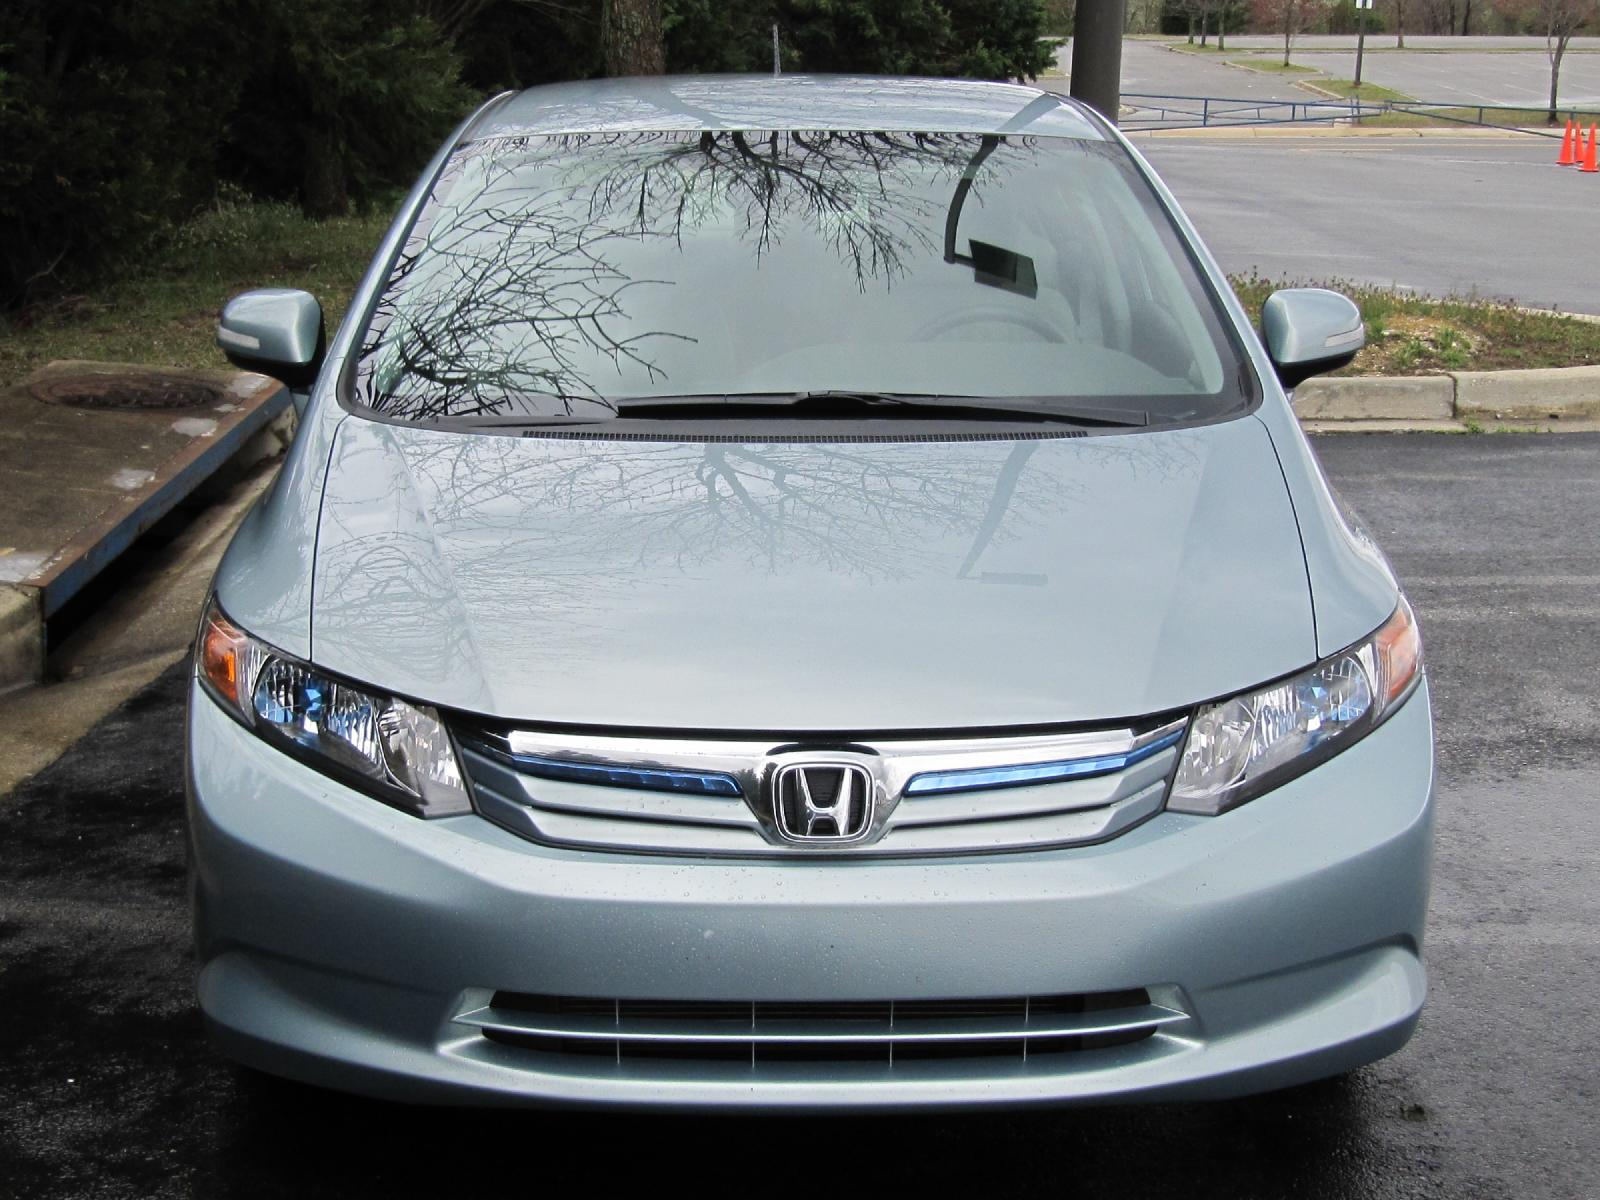 2013 Honda Civic Hybrid Will Be Made In U S Not Japan